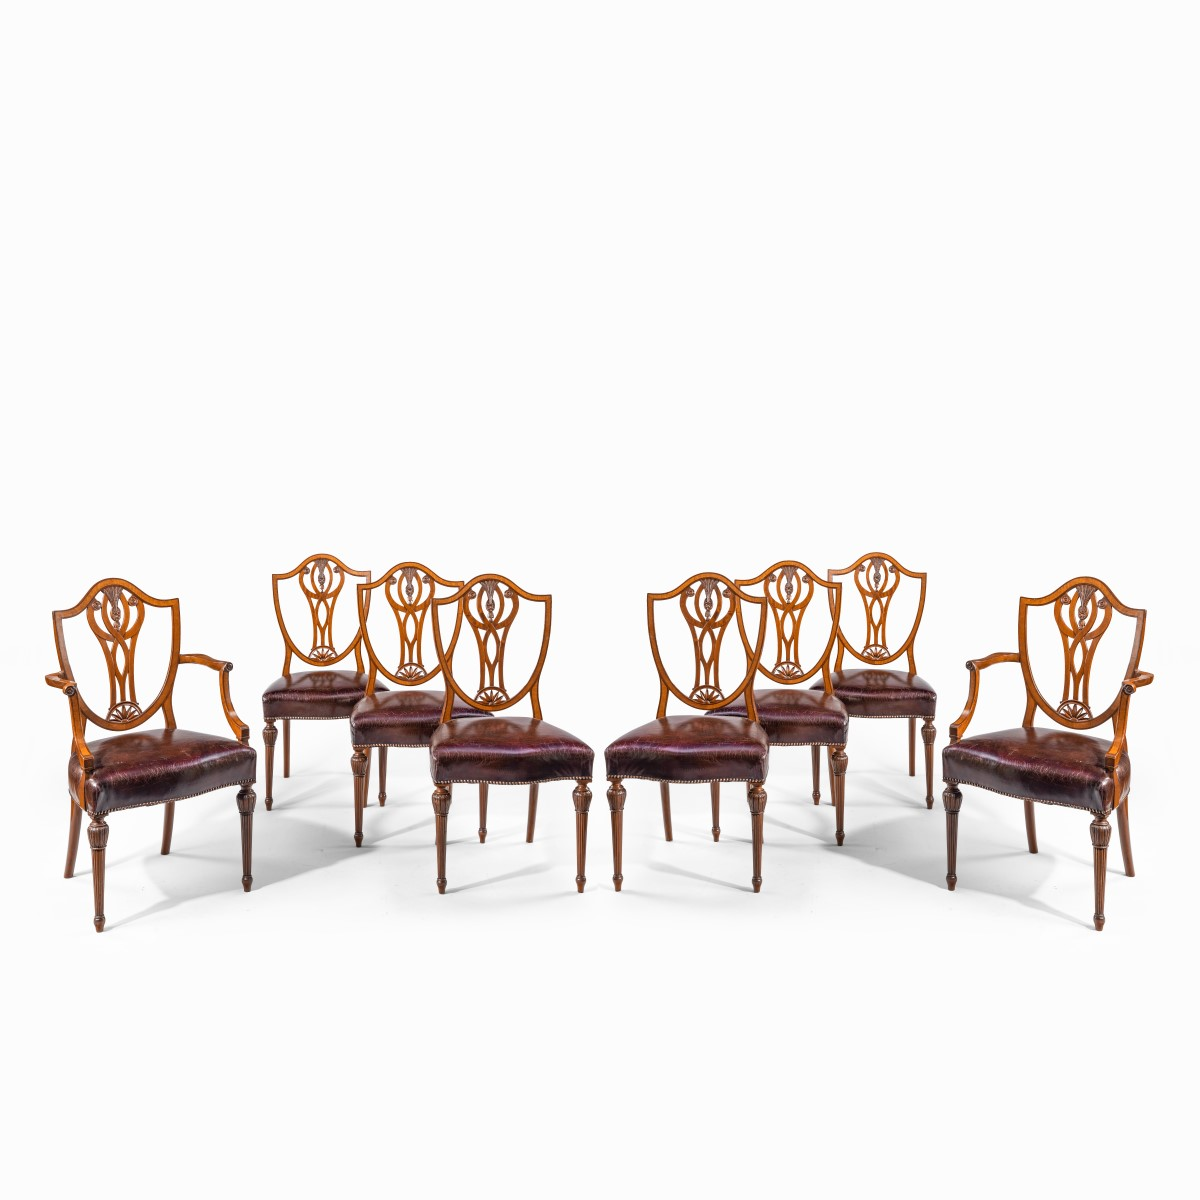 Set of eight late Victorian Hepplewhite Revival mahogany dining chairs